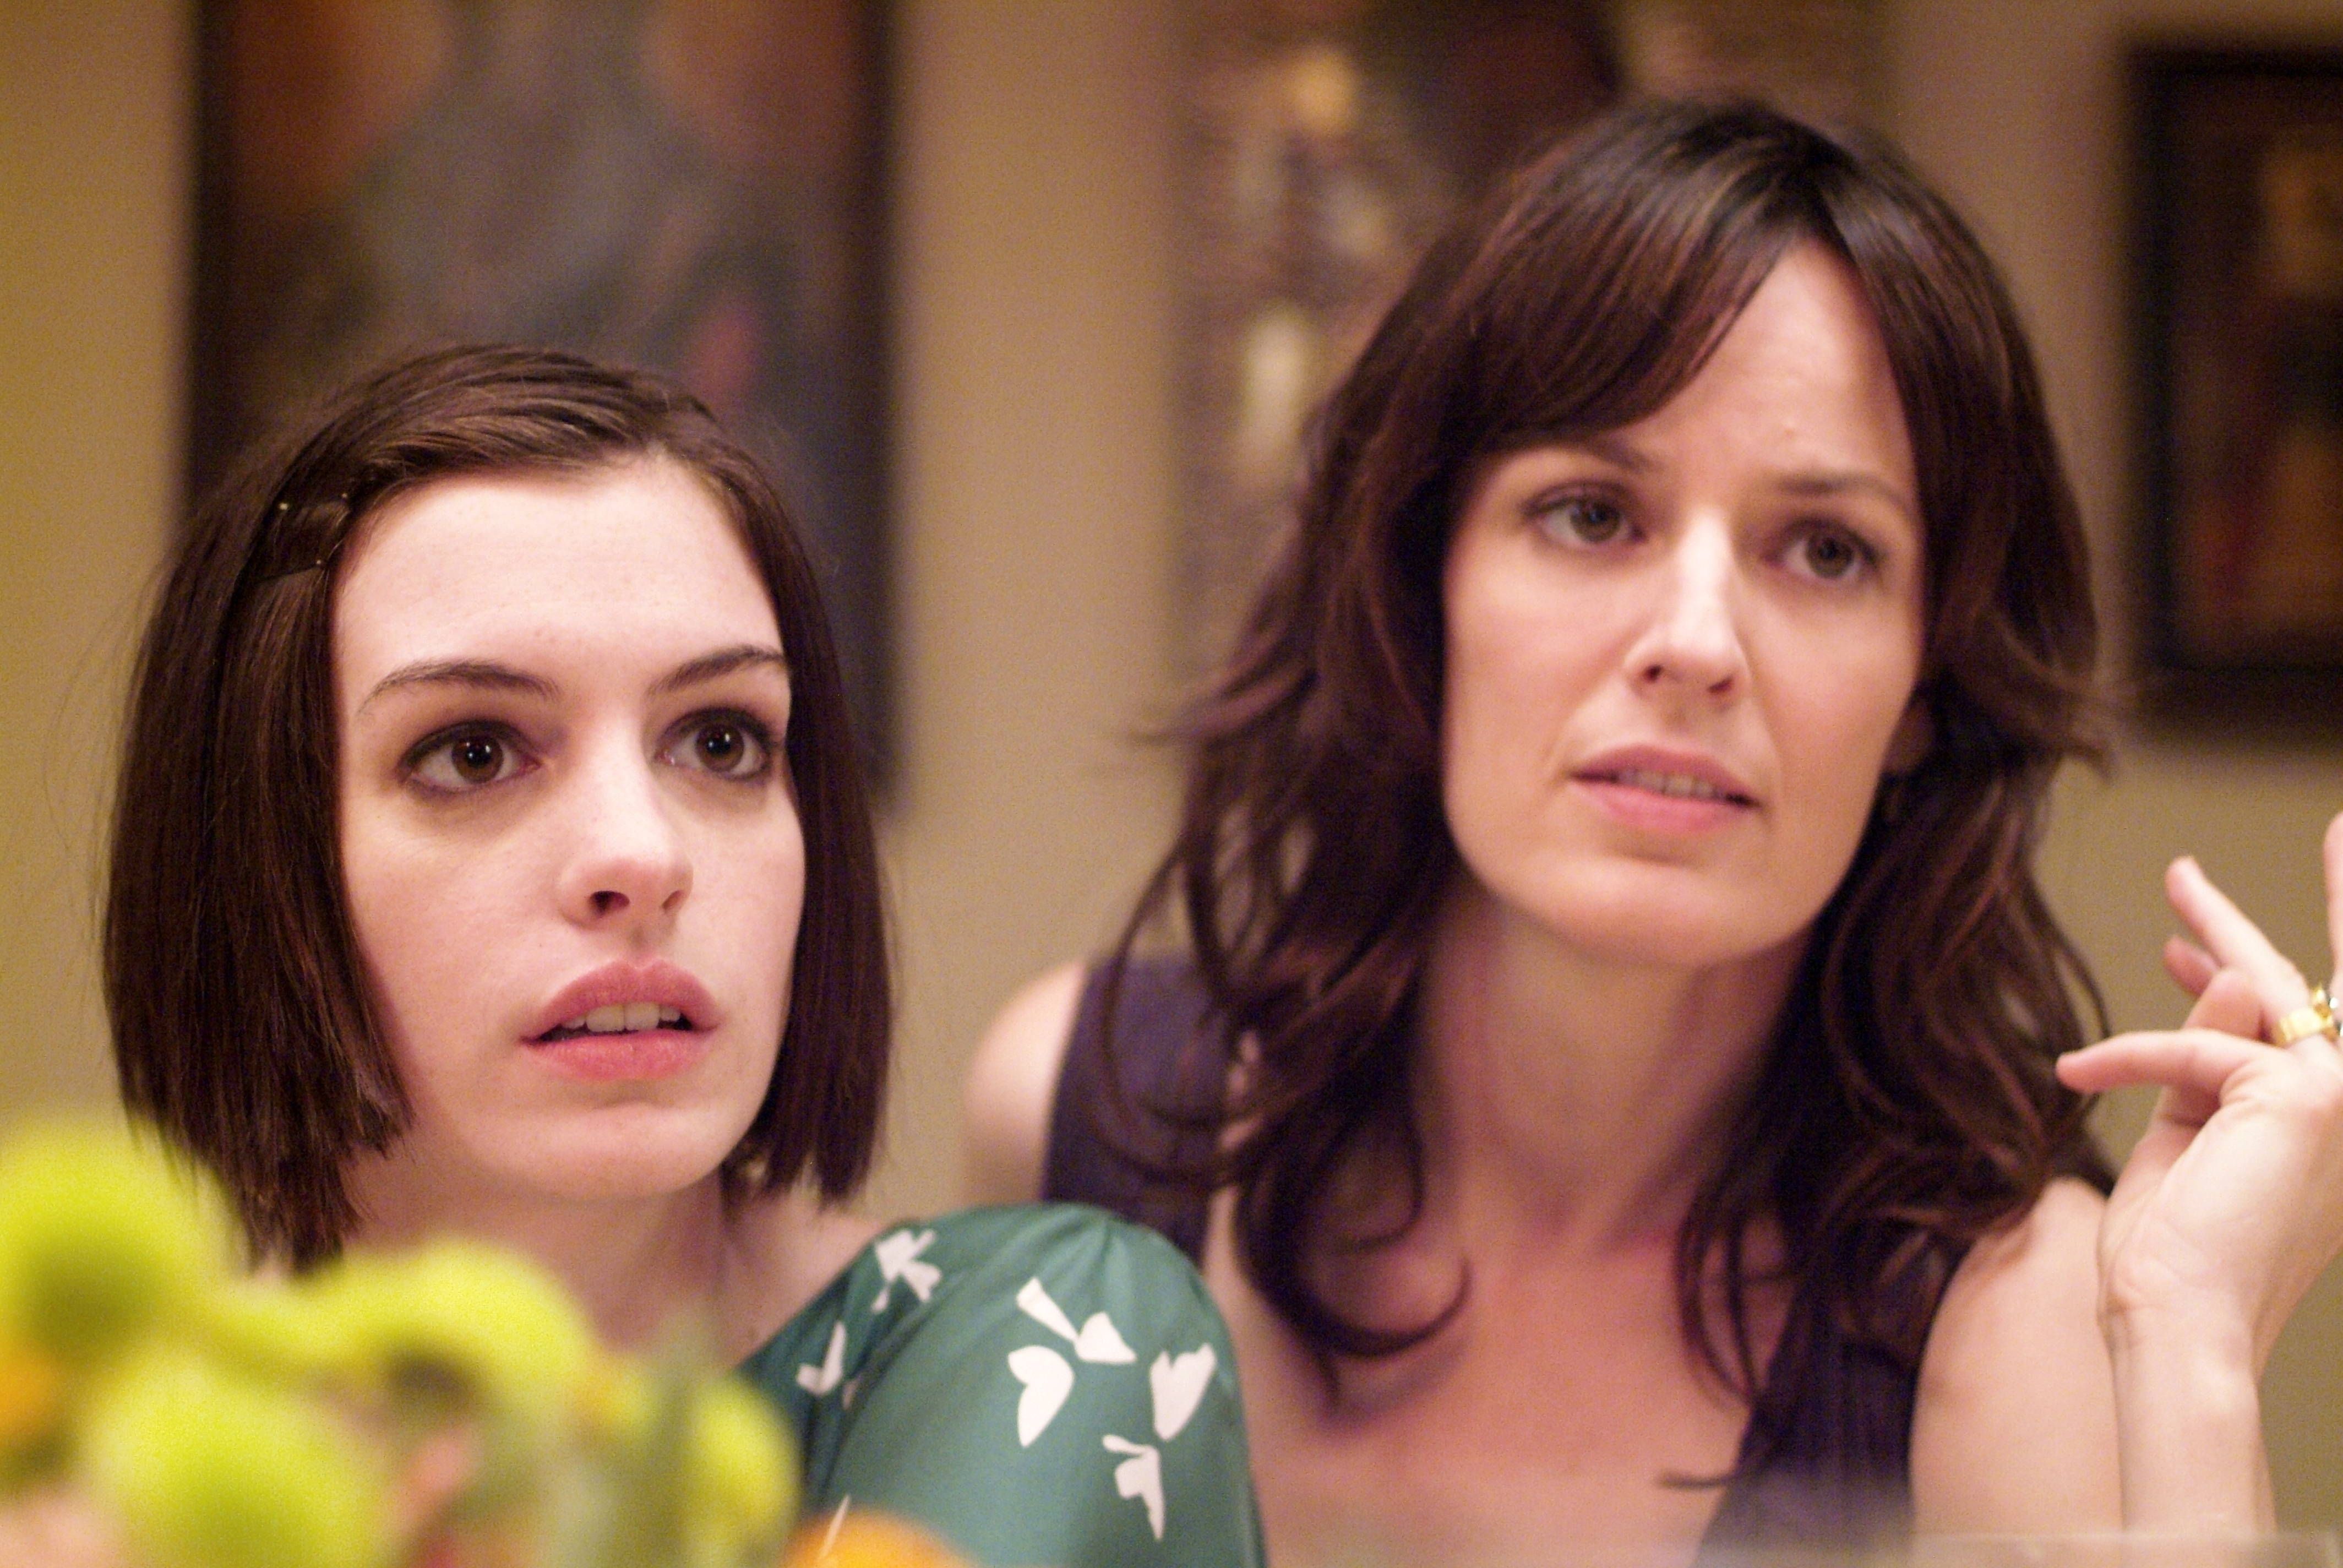 Anne Hathaway as Kym and Rosemarie DeWitt as Rachel in Sony Pictures Classics' Rachel Getting Married (2008). Photo by Bob Vergara.